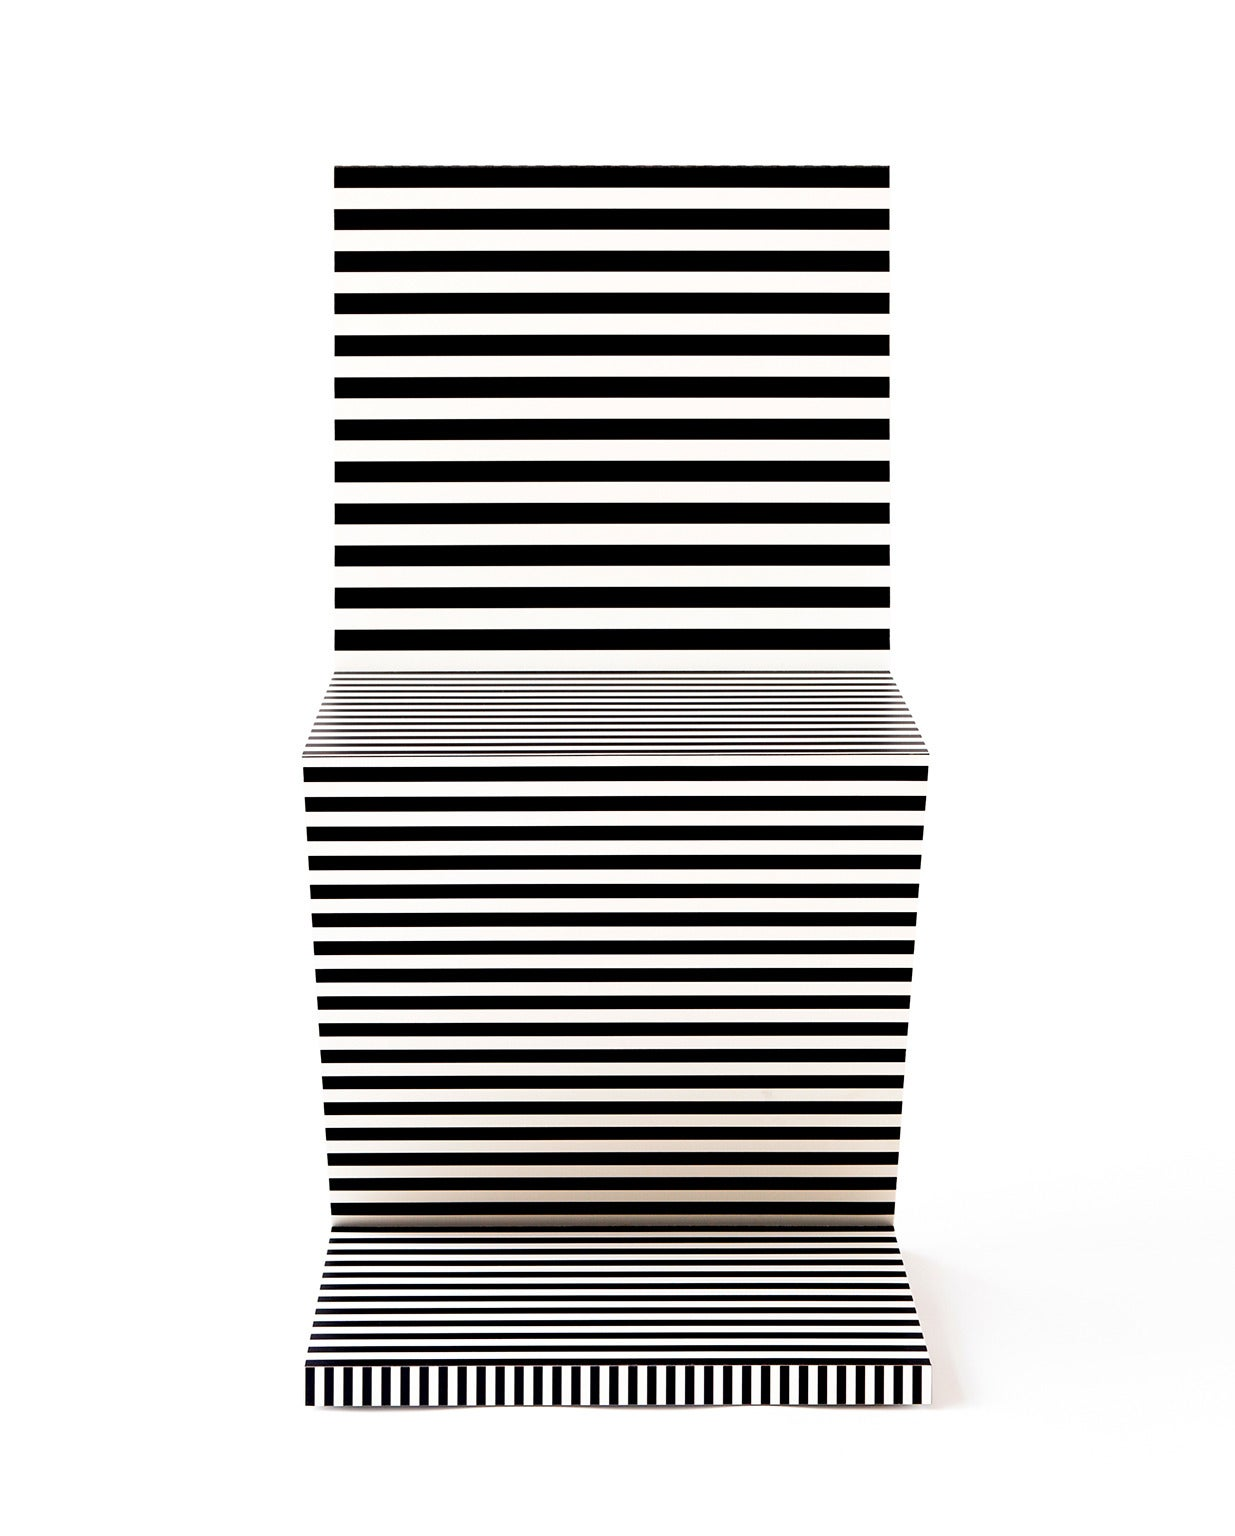 Neo Laminati chair No. 34.